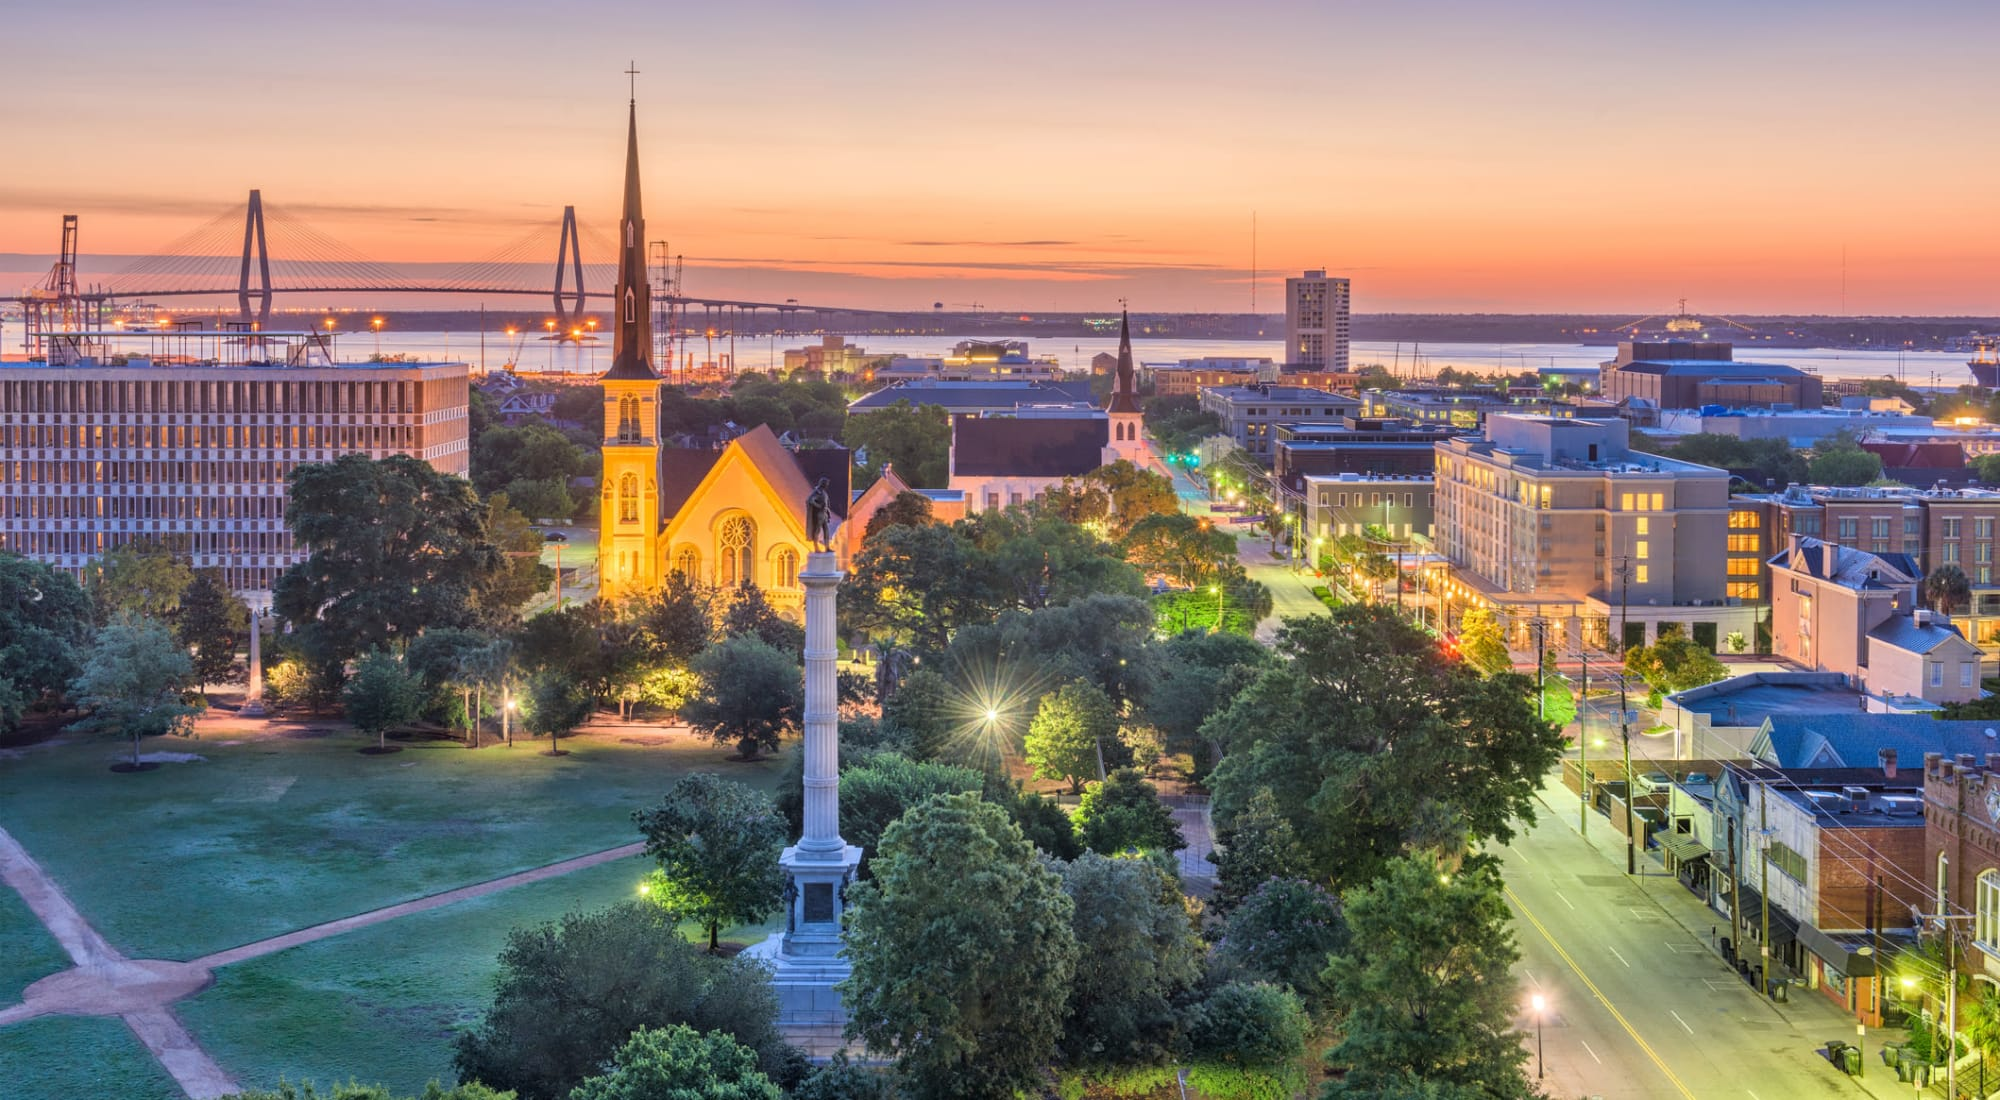 Directions to 511 Meeting in Charleston, South Carolina